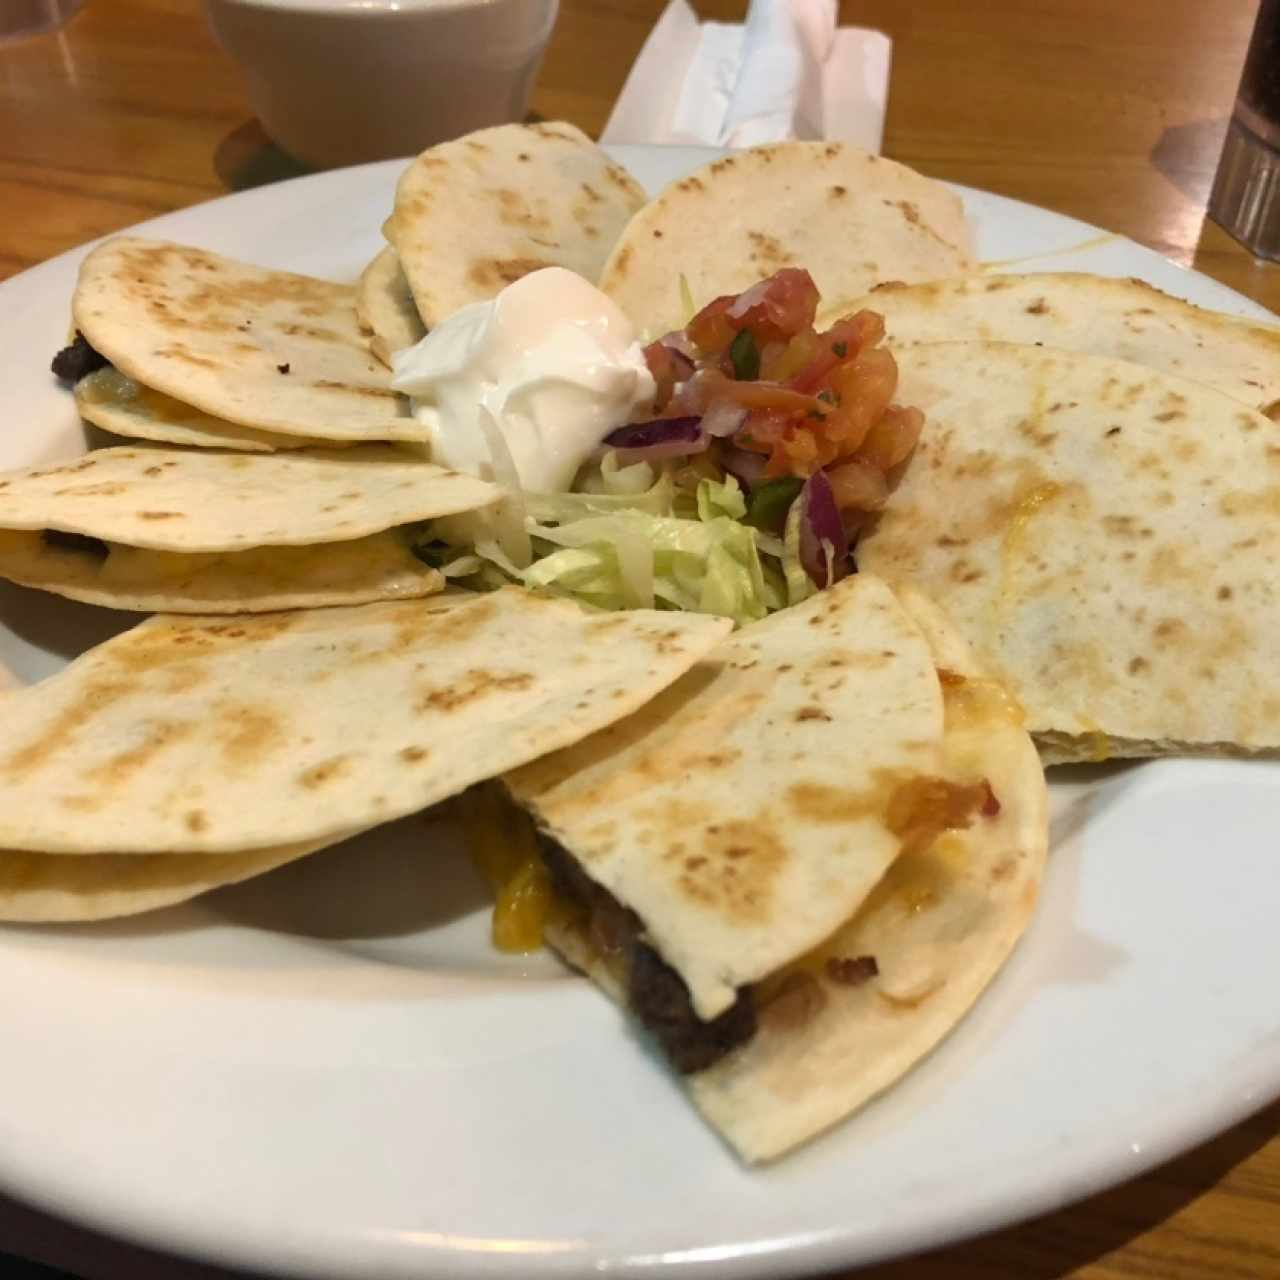 quesadillas de res